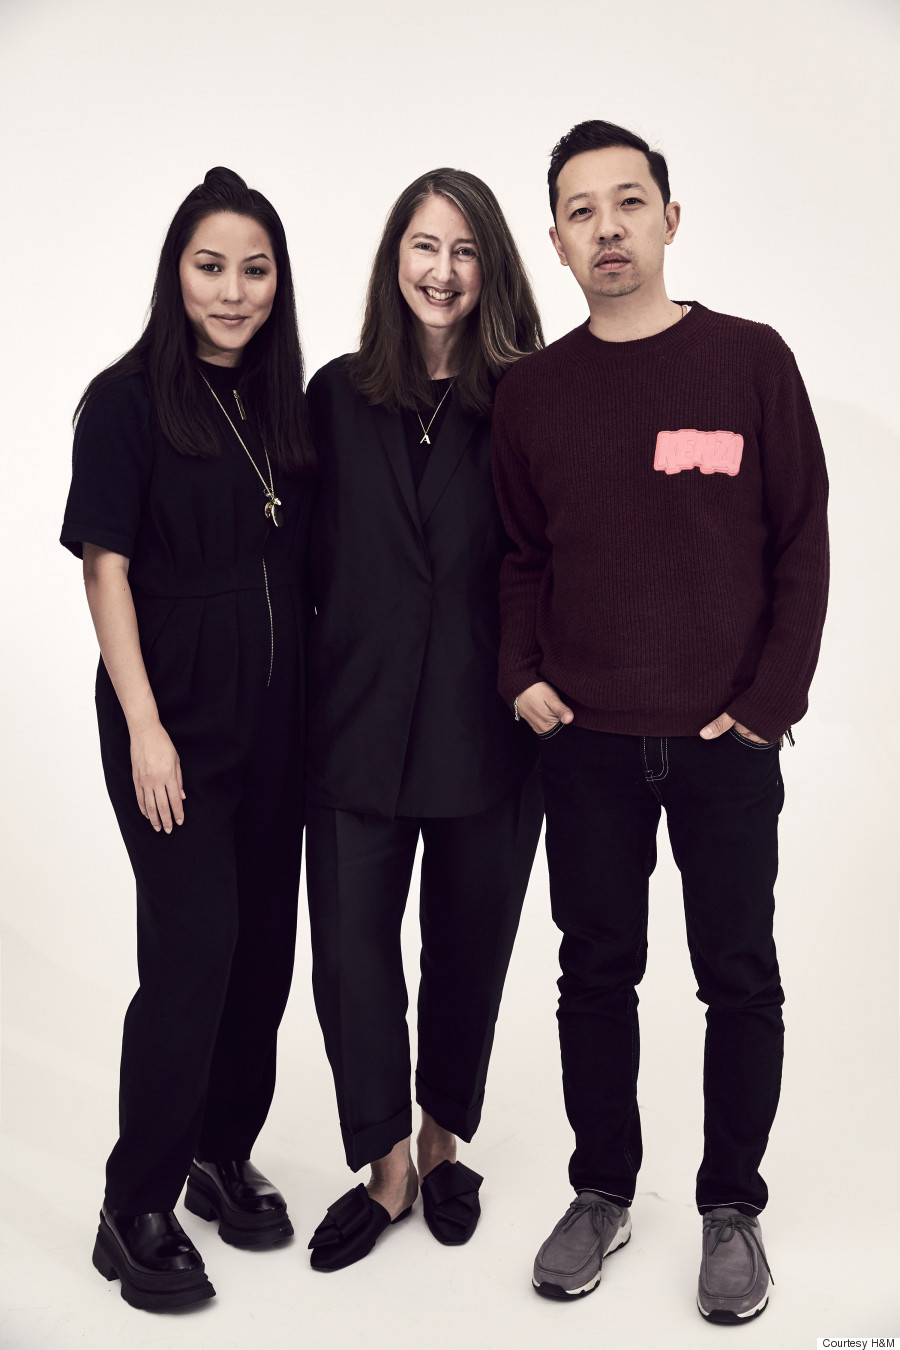 H&M Announces Next Designer Collaboration Is With KENZOhm kenzo